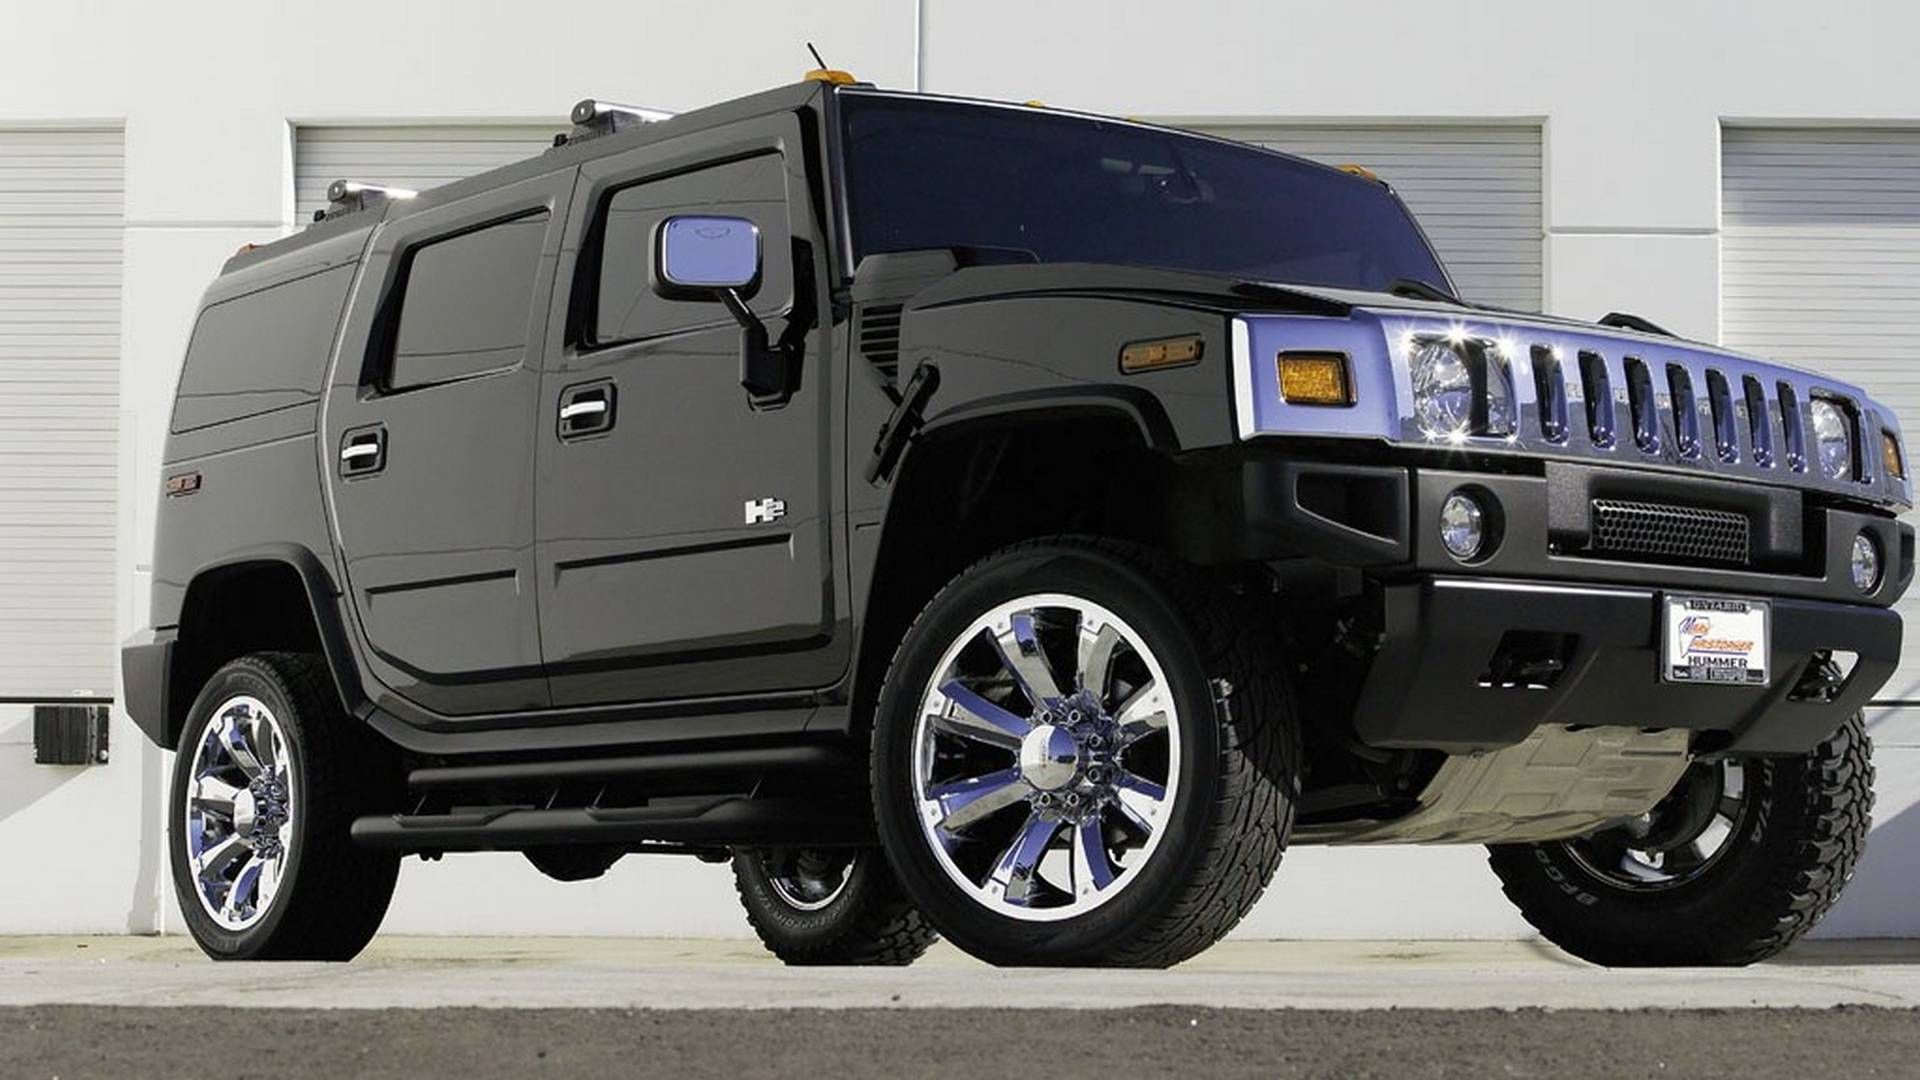 Hummer my dream car i m so obsessed with this truck but i m not to excited about the price maybe one day i will be a hummer owner